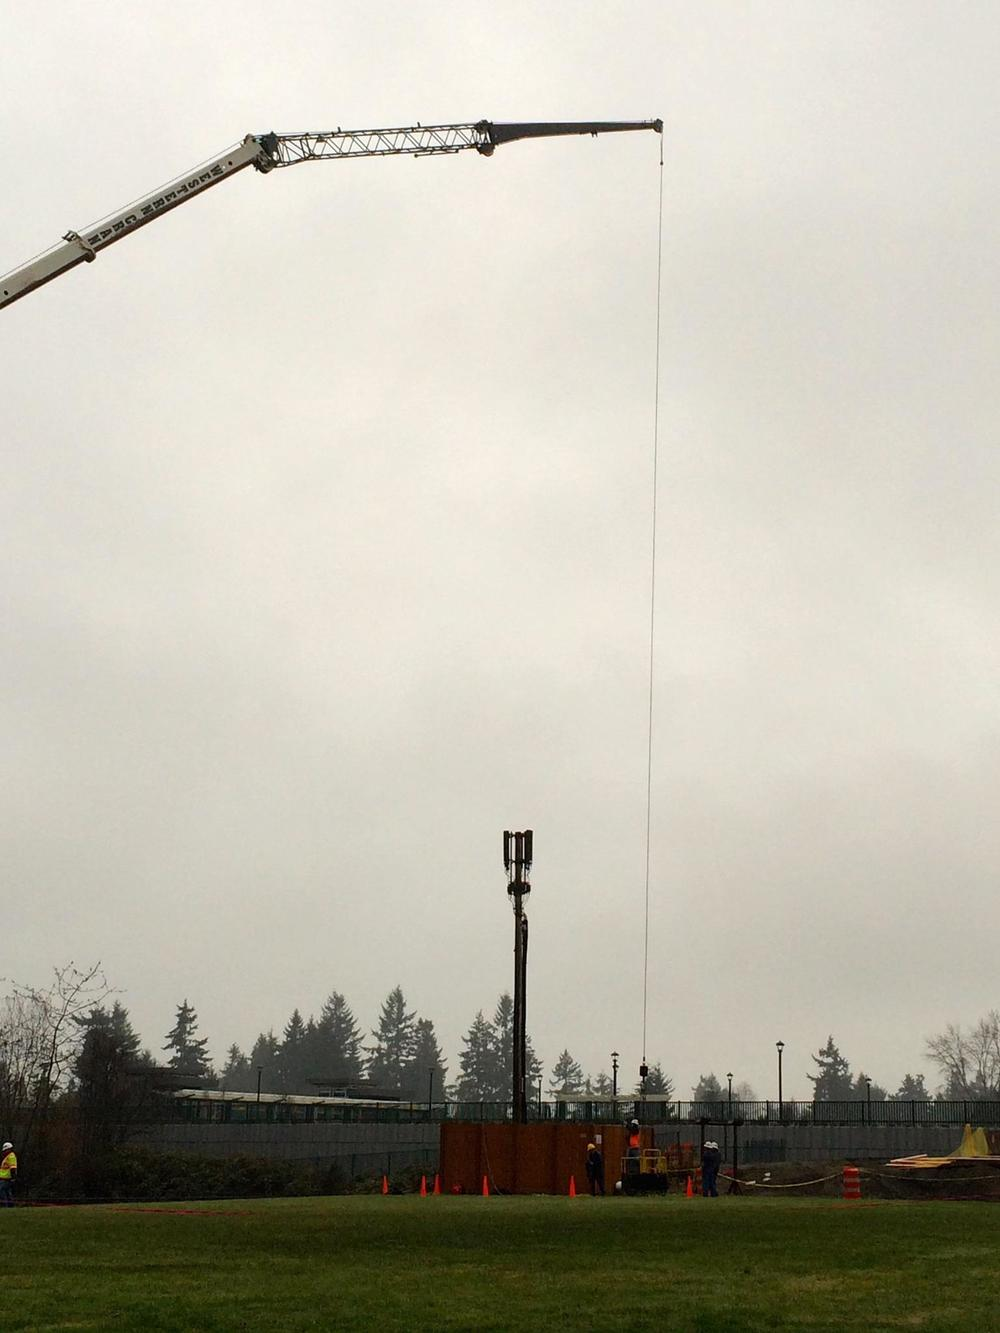 T-Mobile tests heights for permanent industrial cell tower in December 2014. They refused to test any sites outside the park.